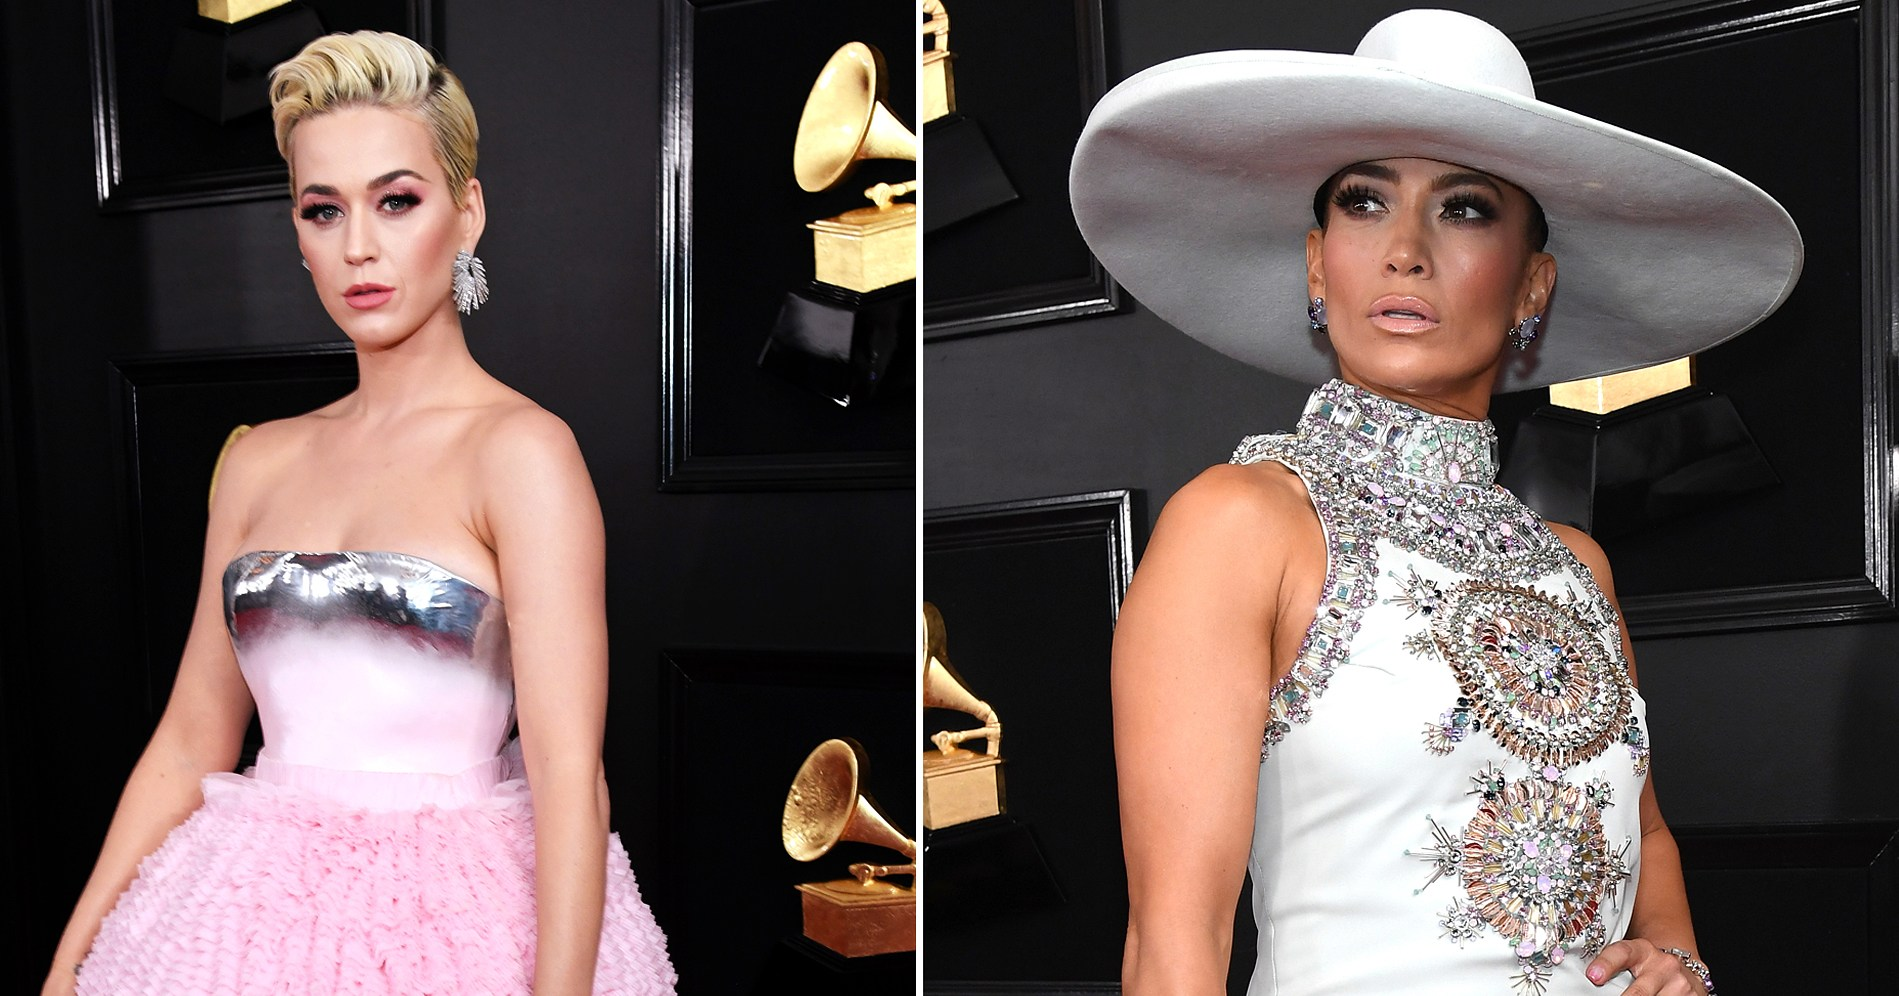 The Wildest Celeb Looks on the Grammys Red Carpet